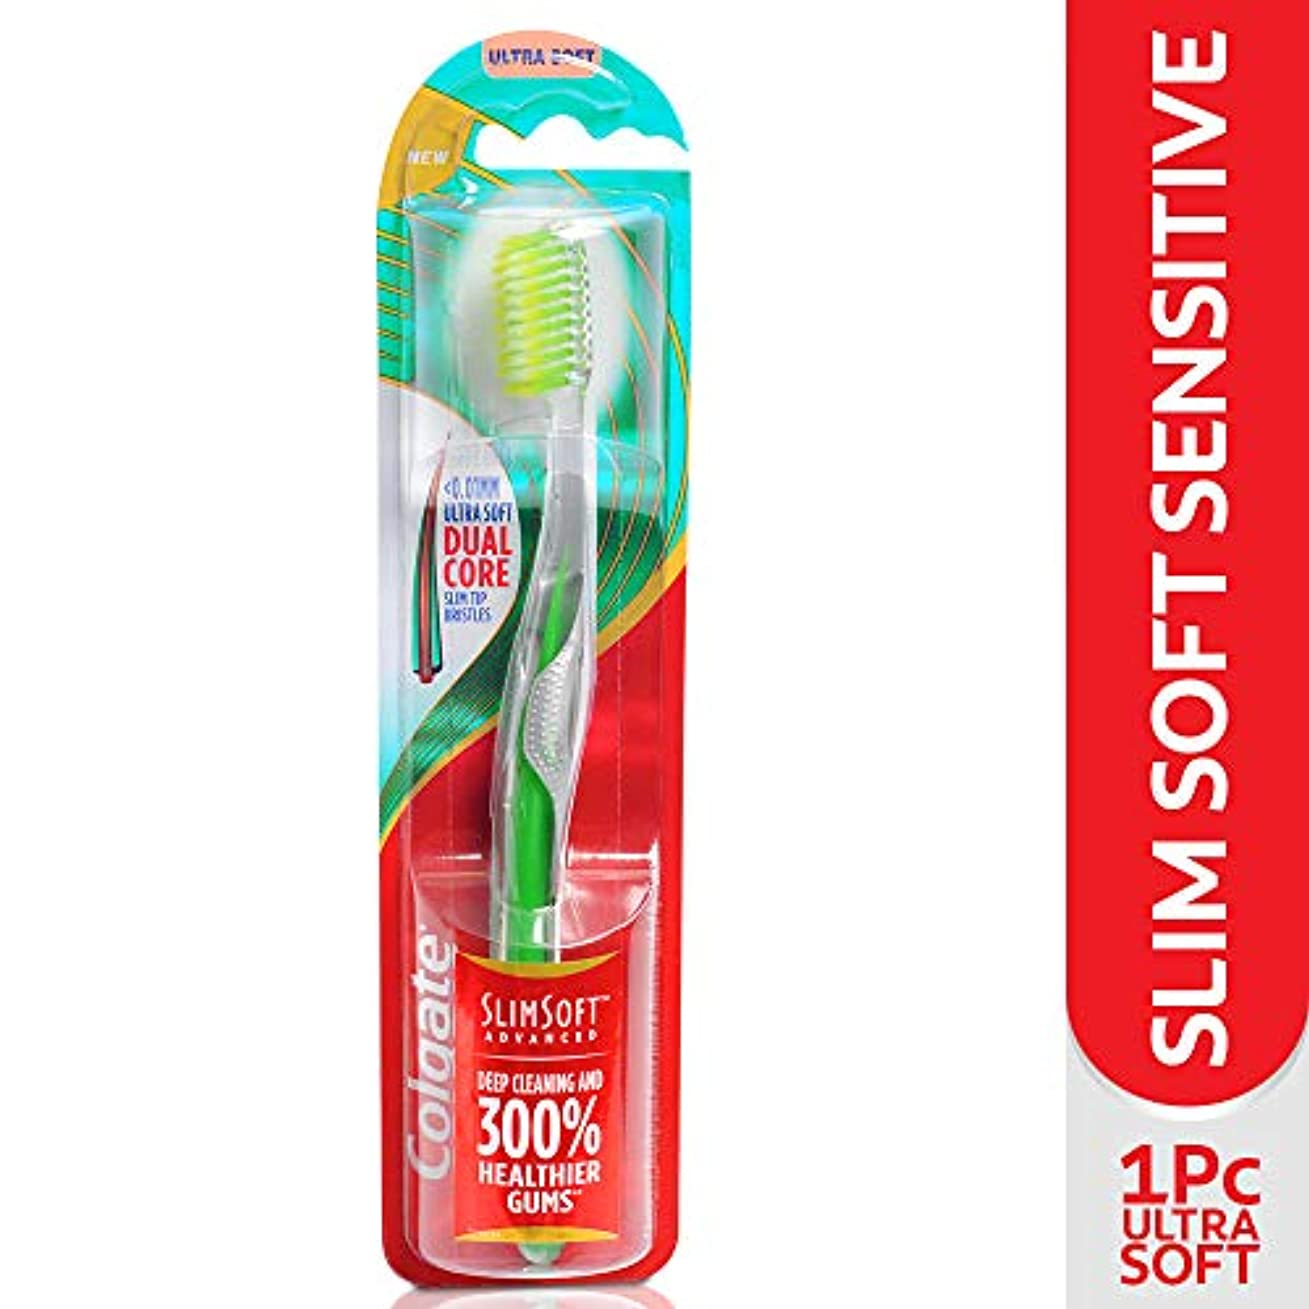 卒業種バナーColgate SLIMSOFT ADVANCED (ULTRA SOFT) TOOTHBRUSH - 1PC